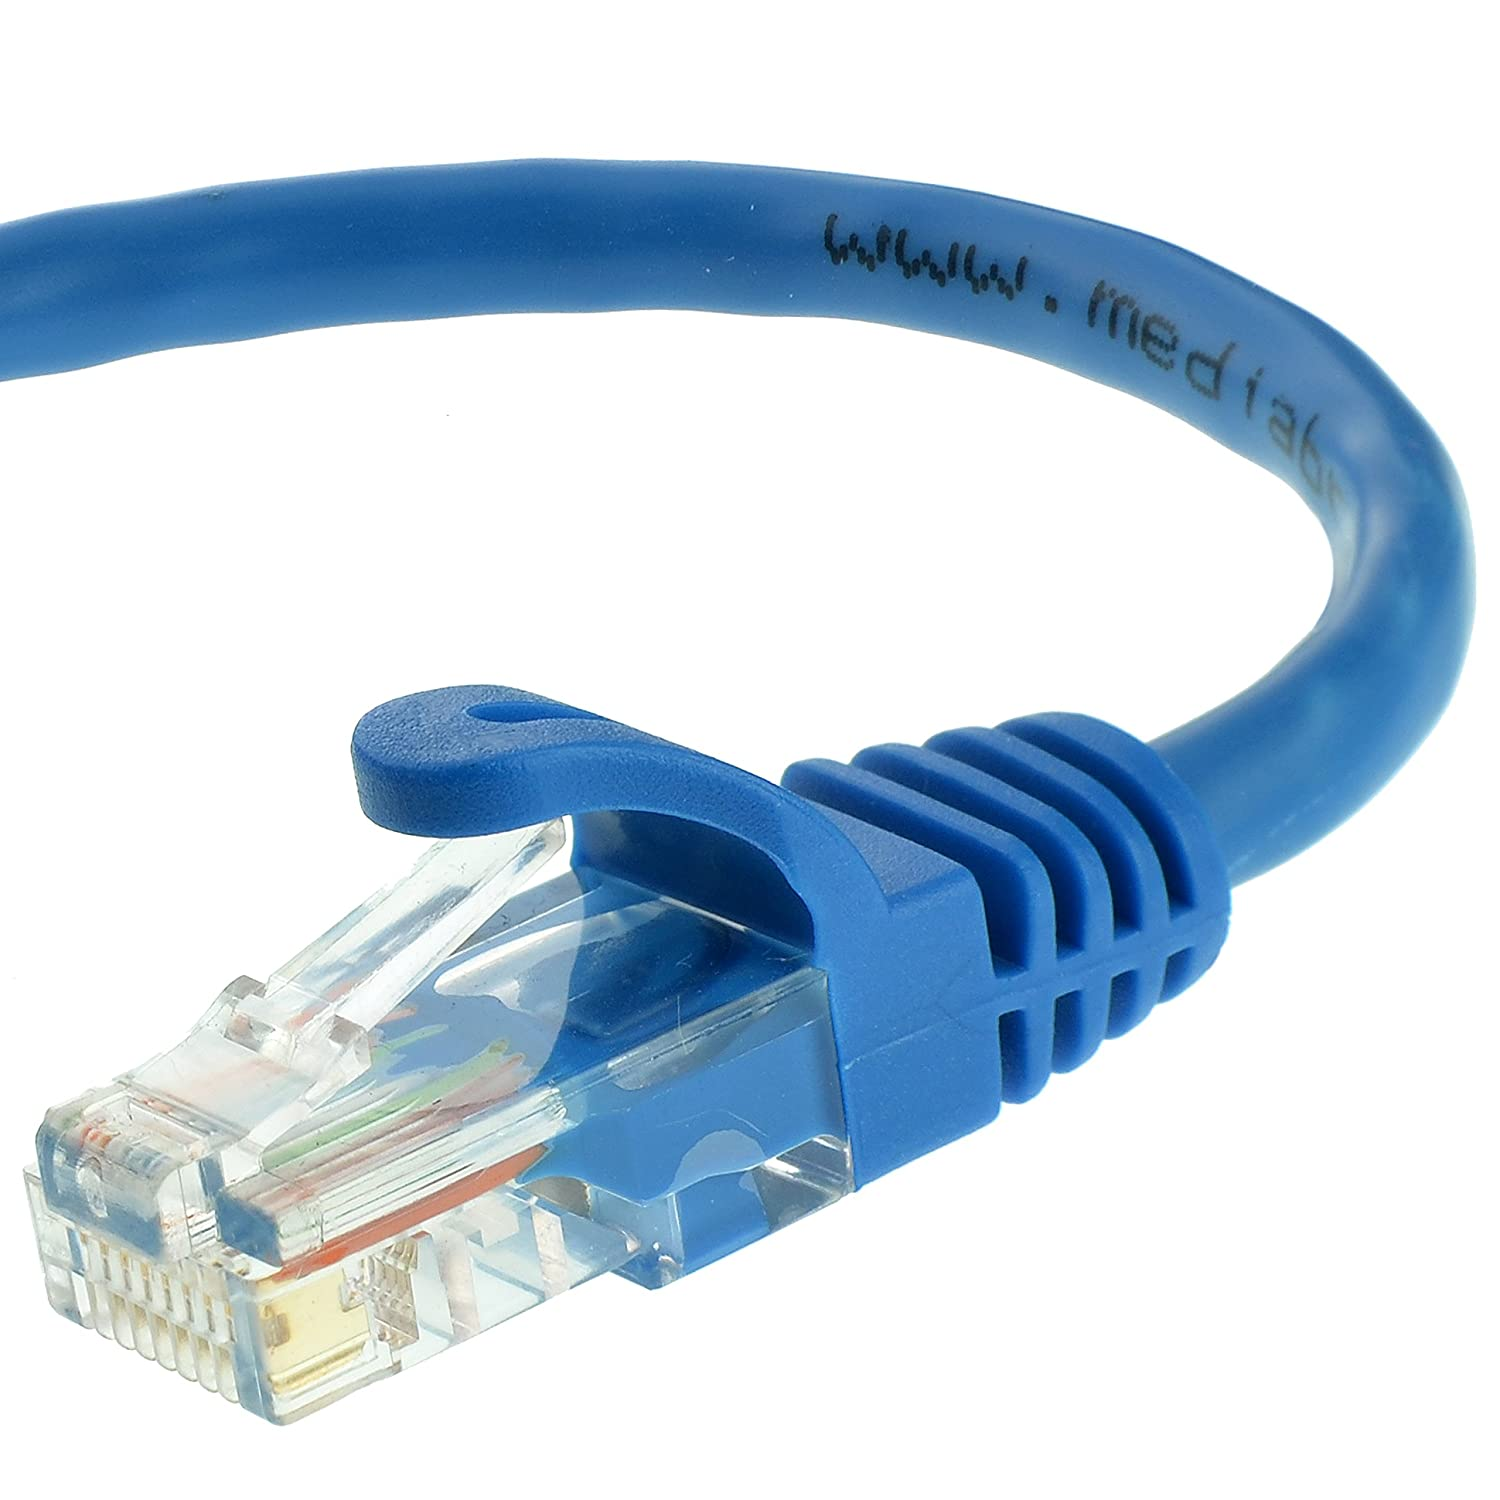 Mediabridge Ethernet Cable (15 Feet) - Supports Cat6/5e/5, 550MHz, 10Gbps - RJ45 Cord (Part# 31-399-15X )